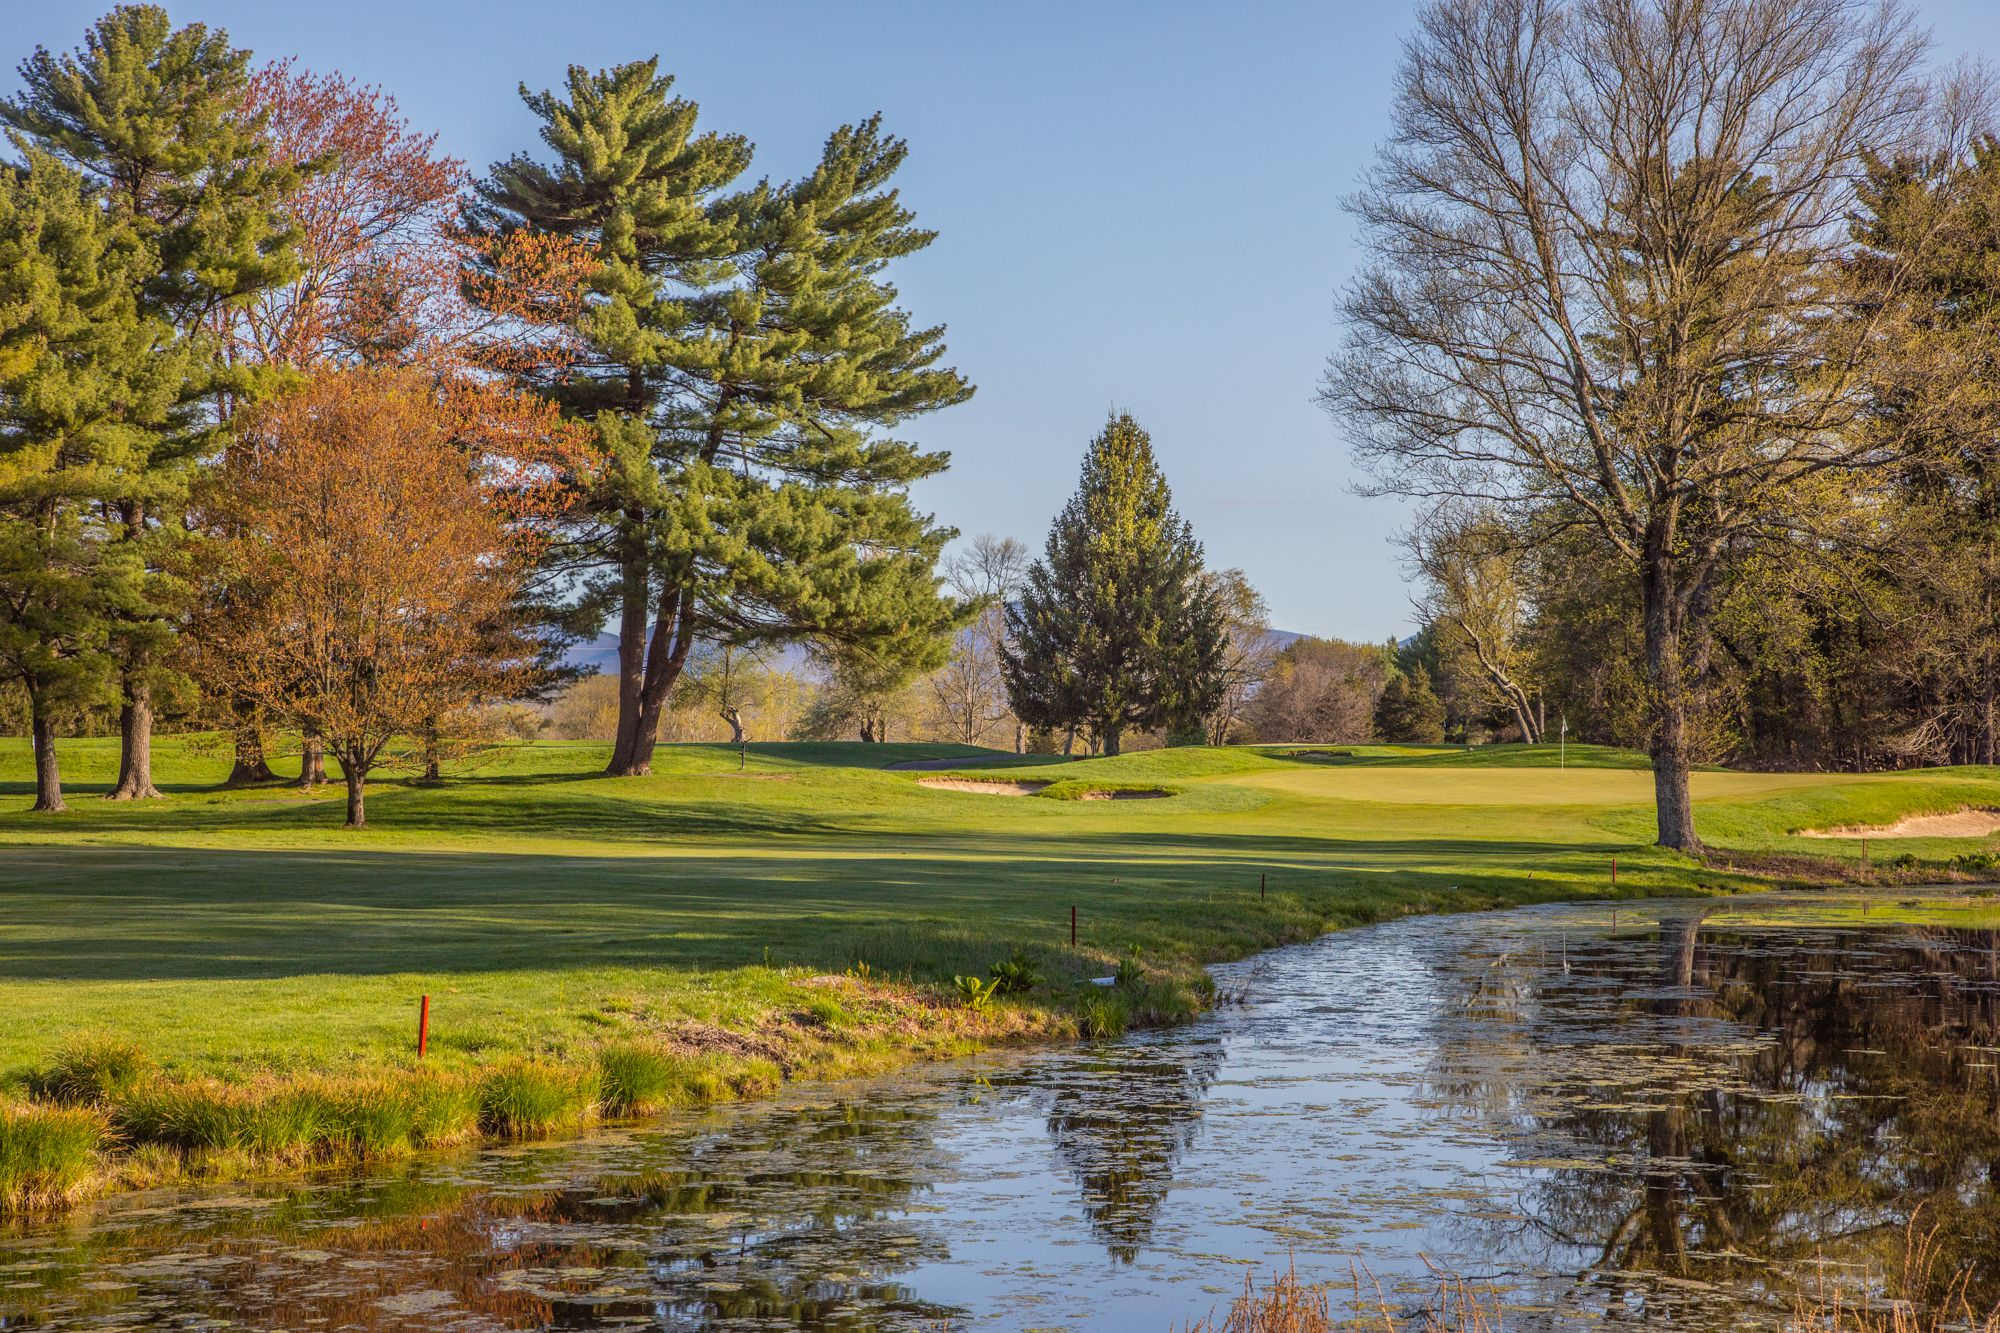 beautiful scenery of hole number 15 at Wiltwyck in Kingston NY